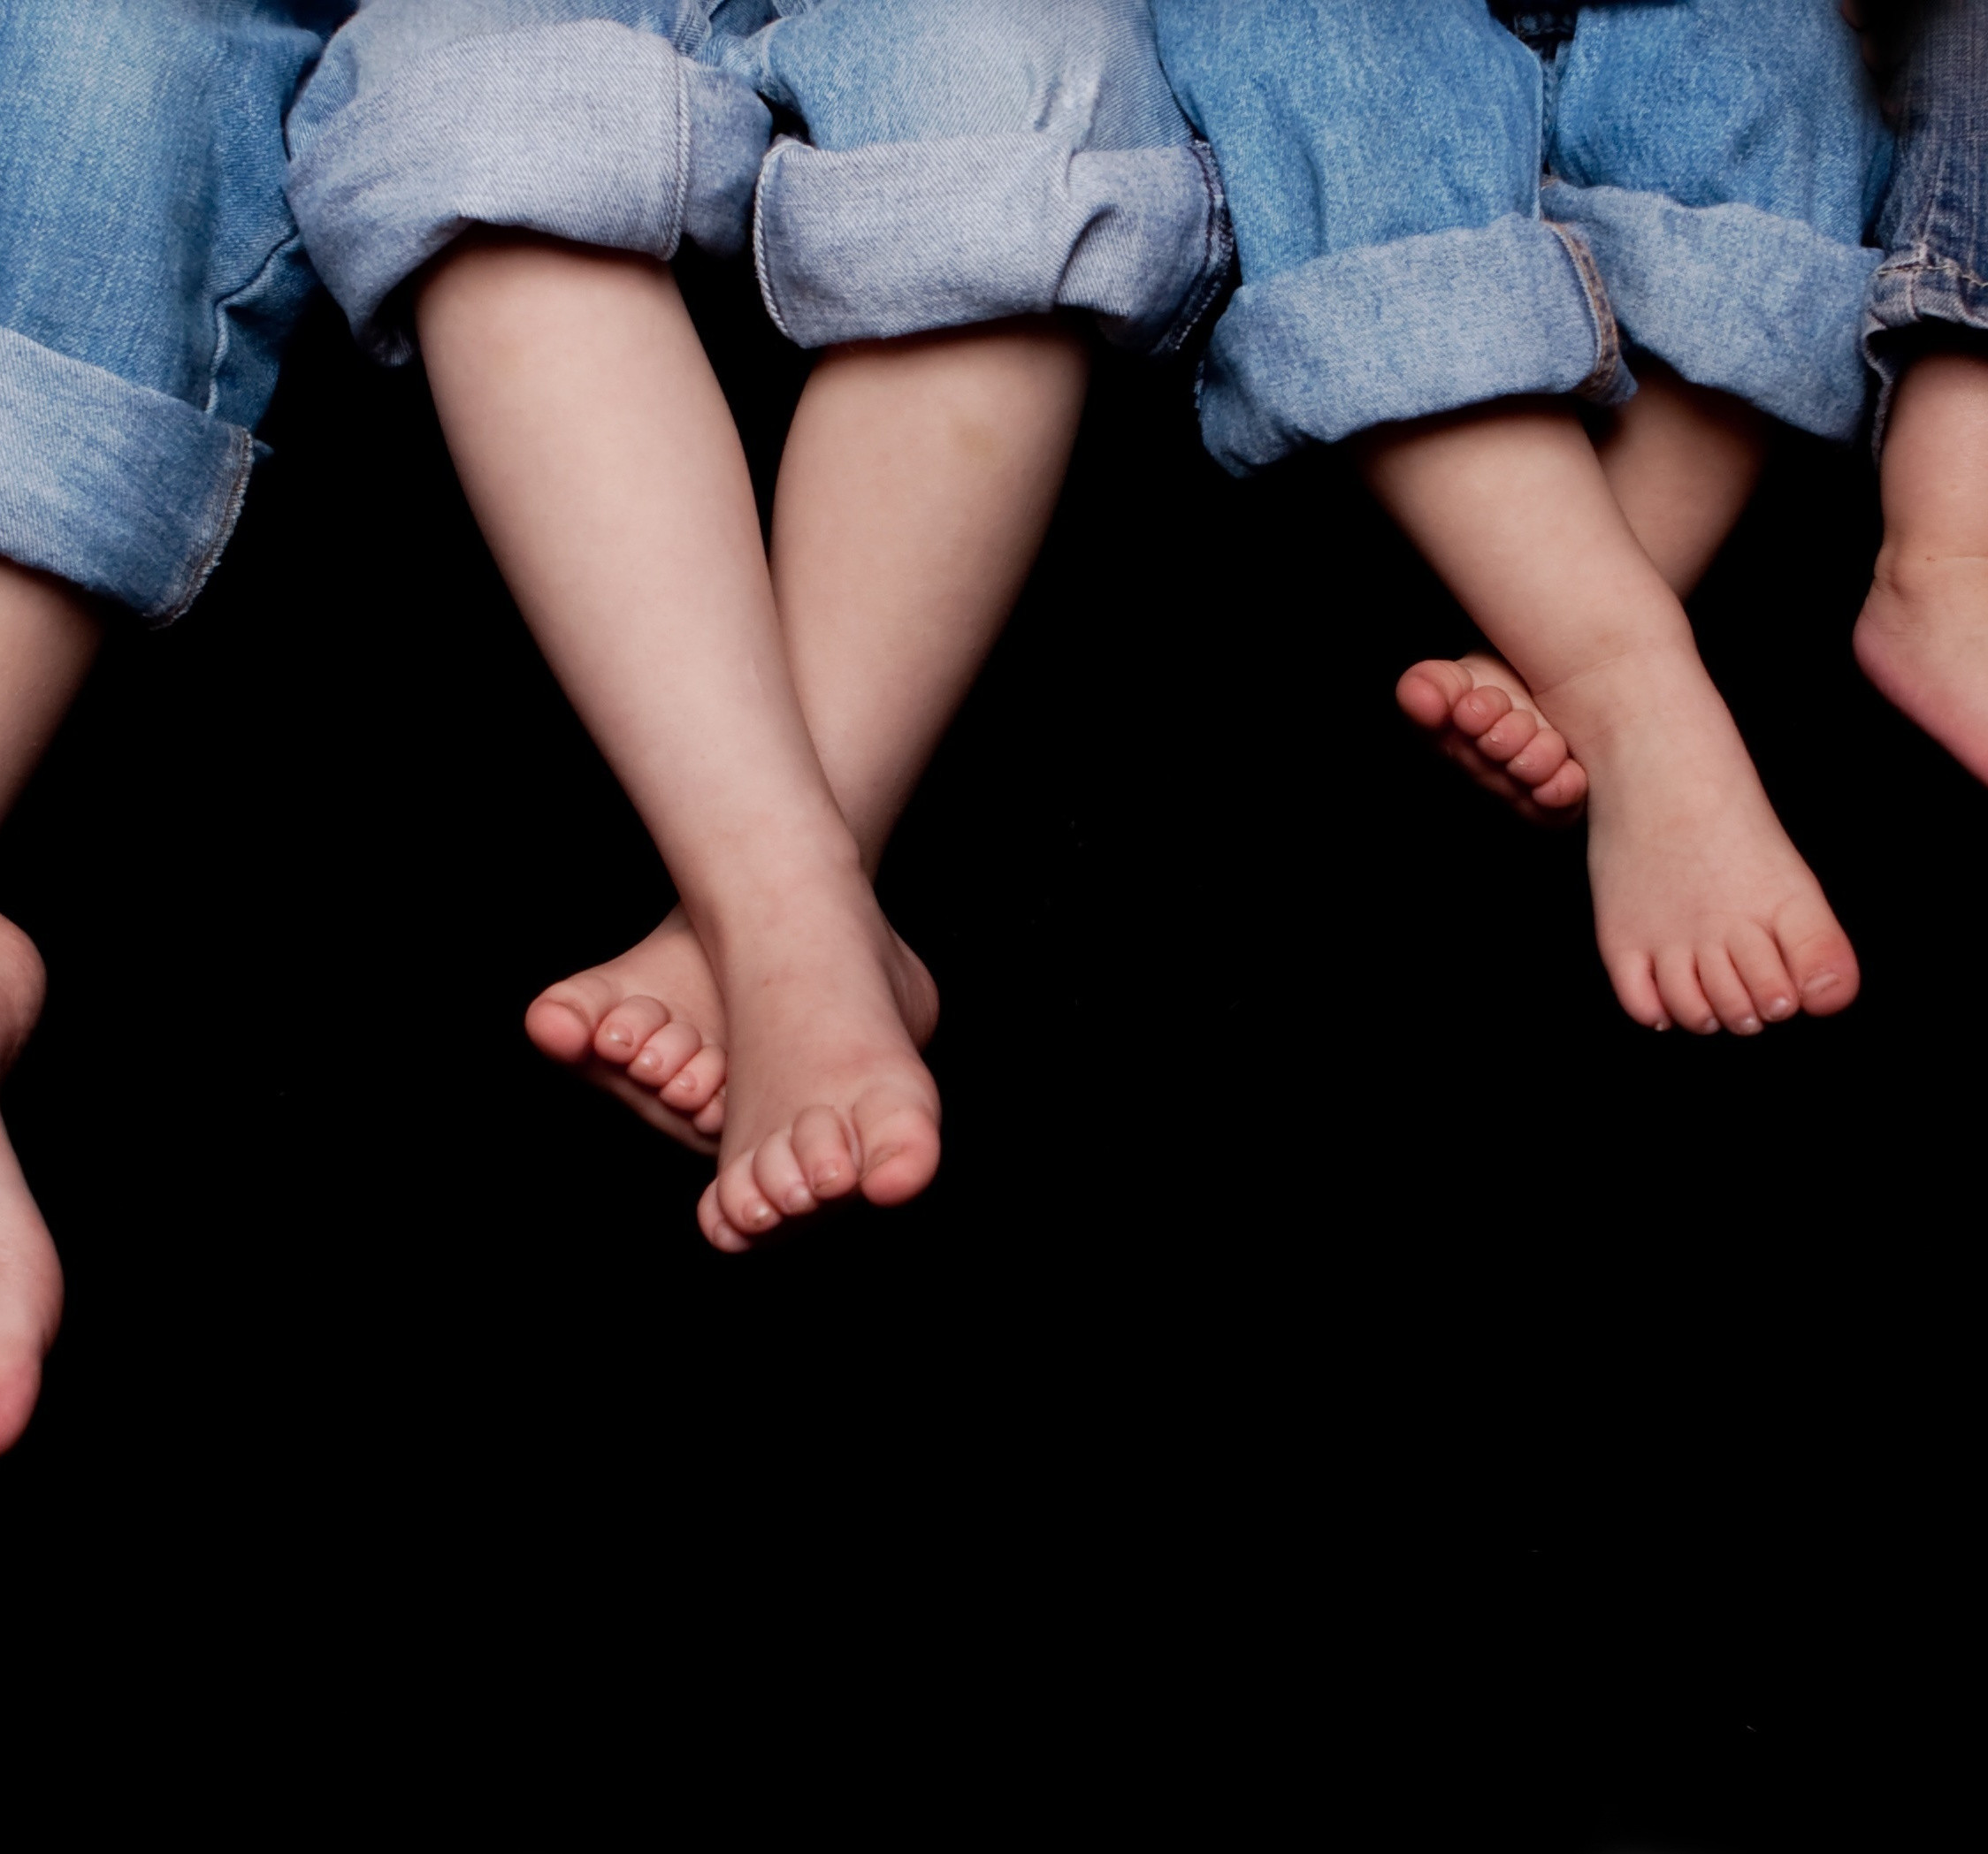 2248x2097 Kids' Legs, jeans, portrait, 2248x2248 wallpaper